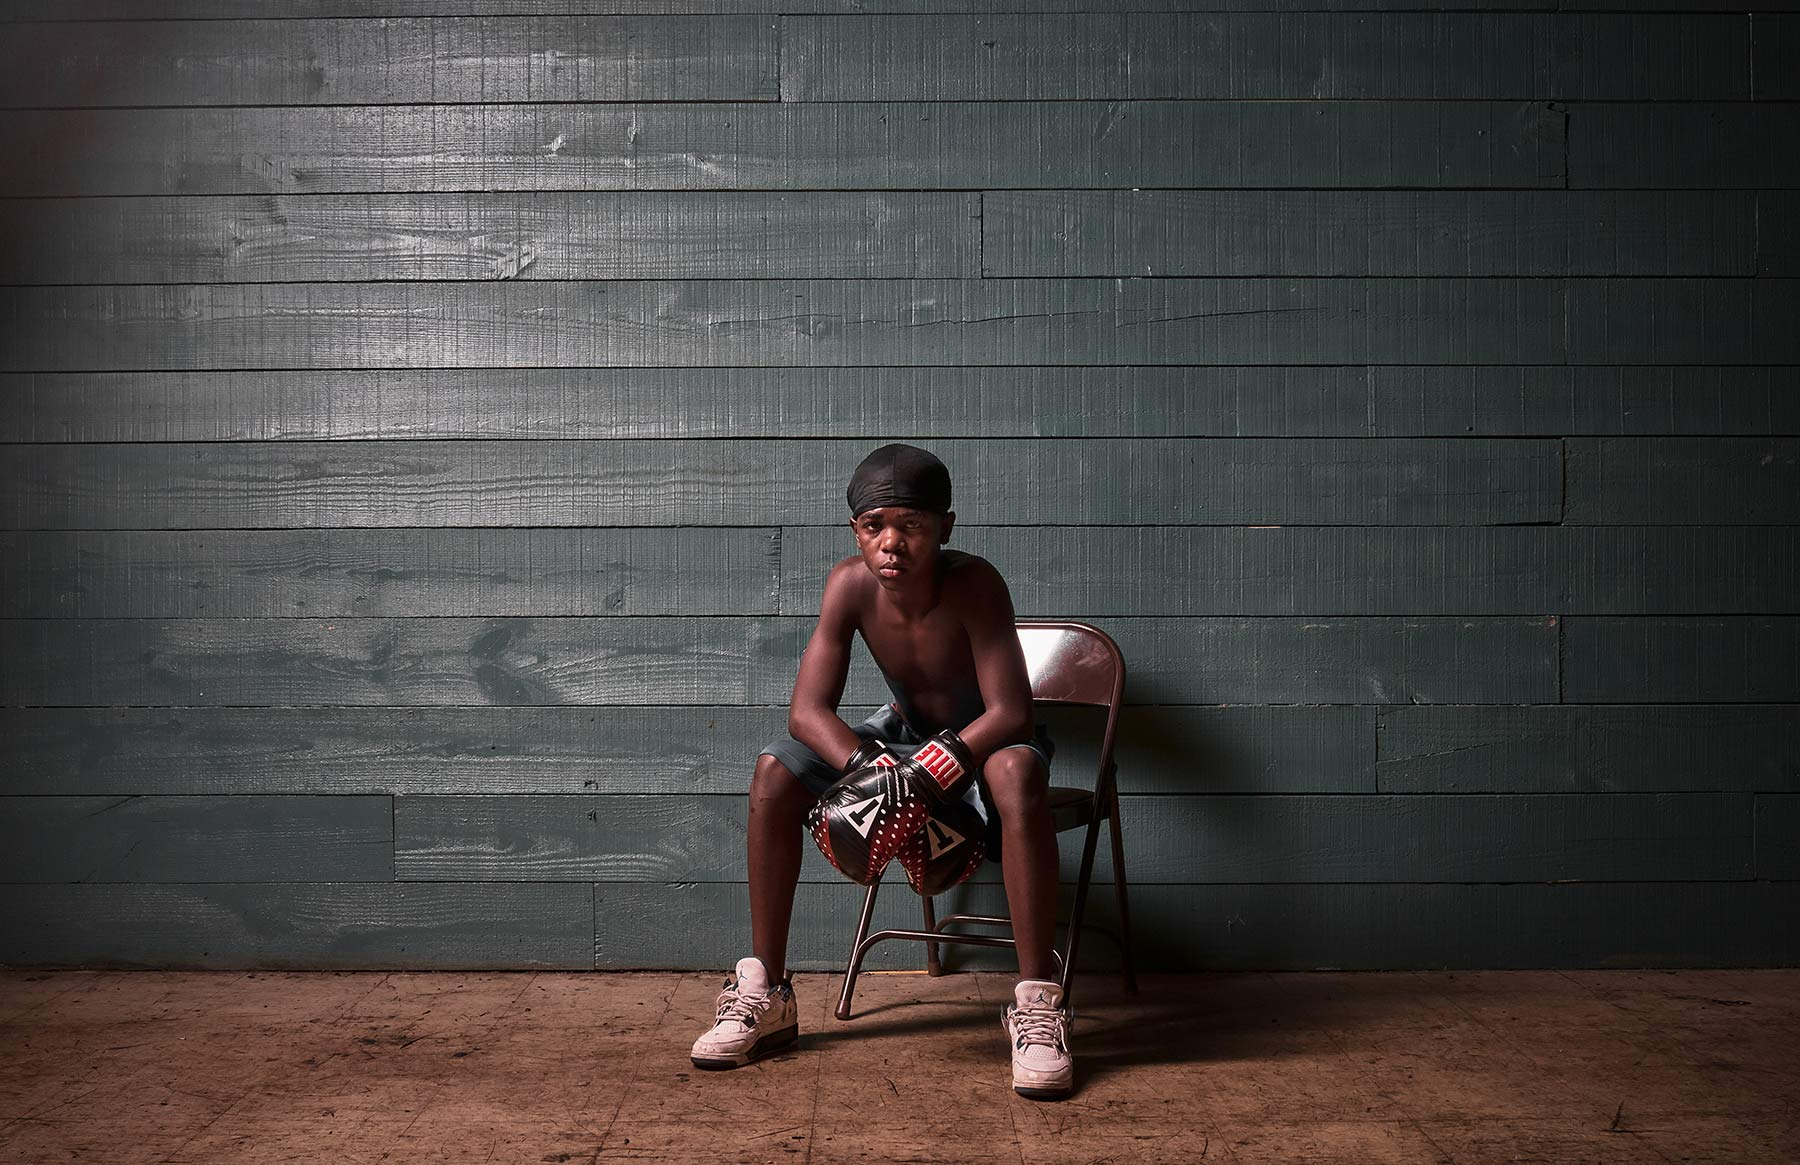 A-portrait-of-a-young-boy-wearing-boxing-gloves-sitting-in-a-chair-in-the-middle-of-an-empty-room-with-panneled-walls